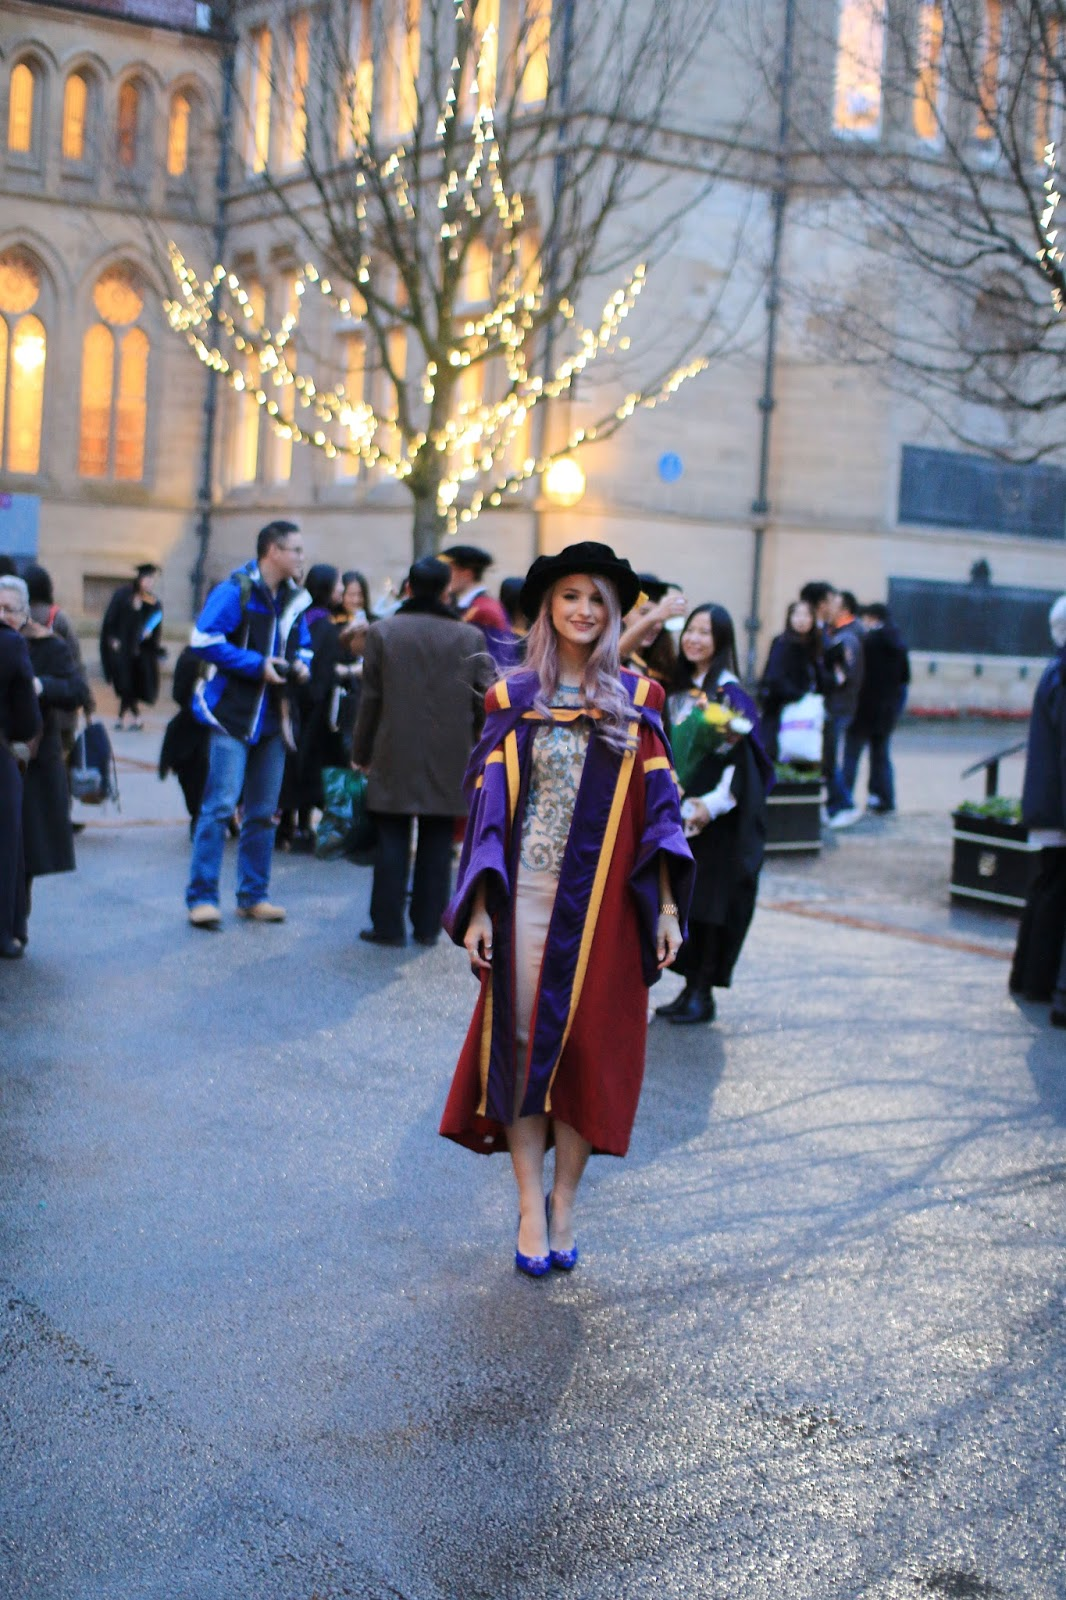 Can I skip Masters and go straight to a Doctorate?